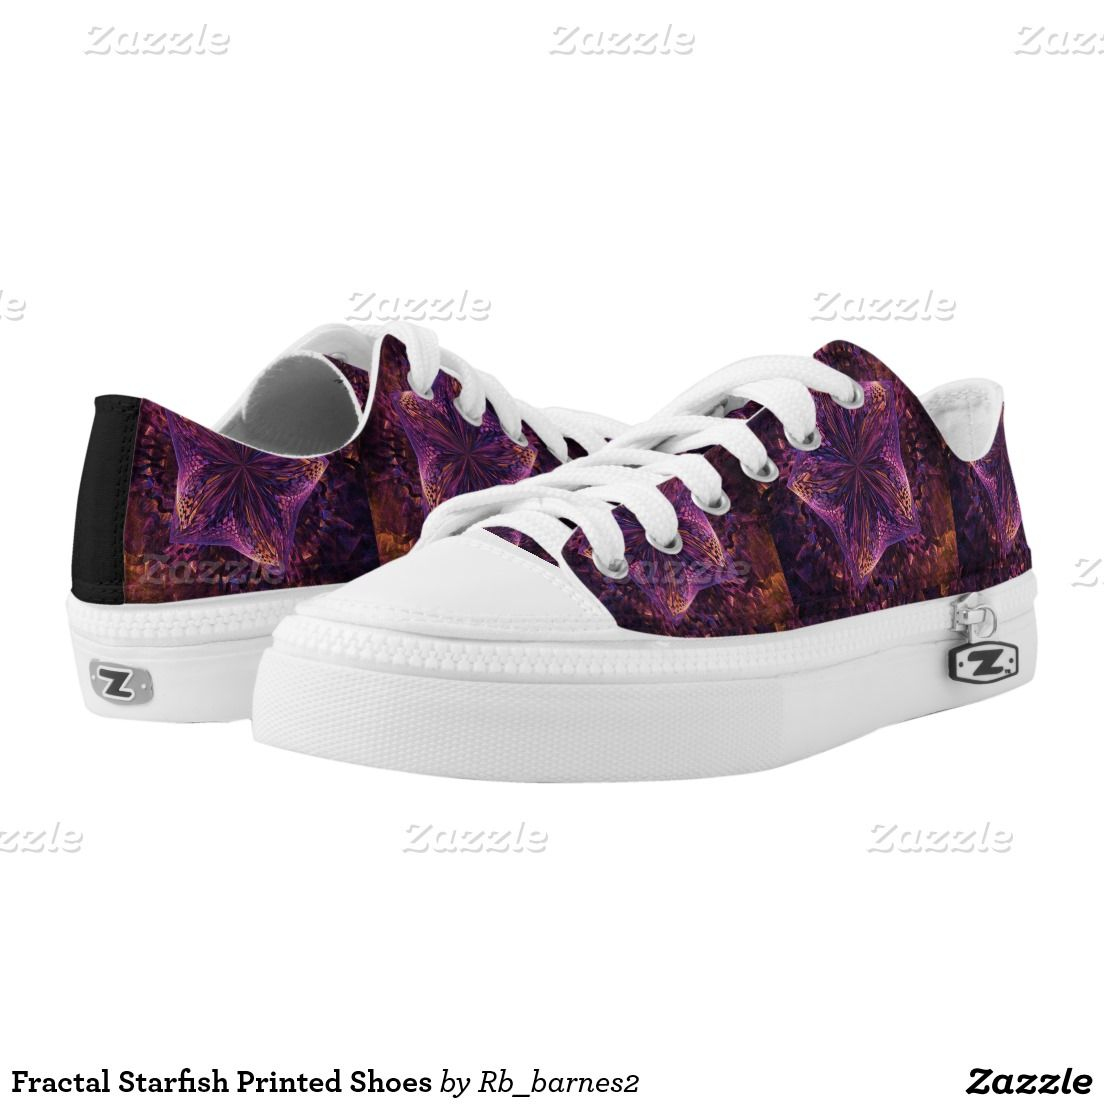 Fractal Starfish Printed Shoes